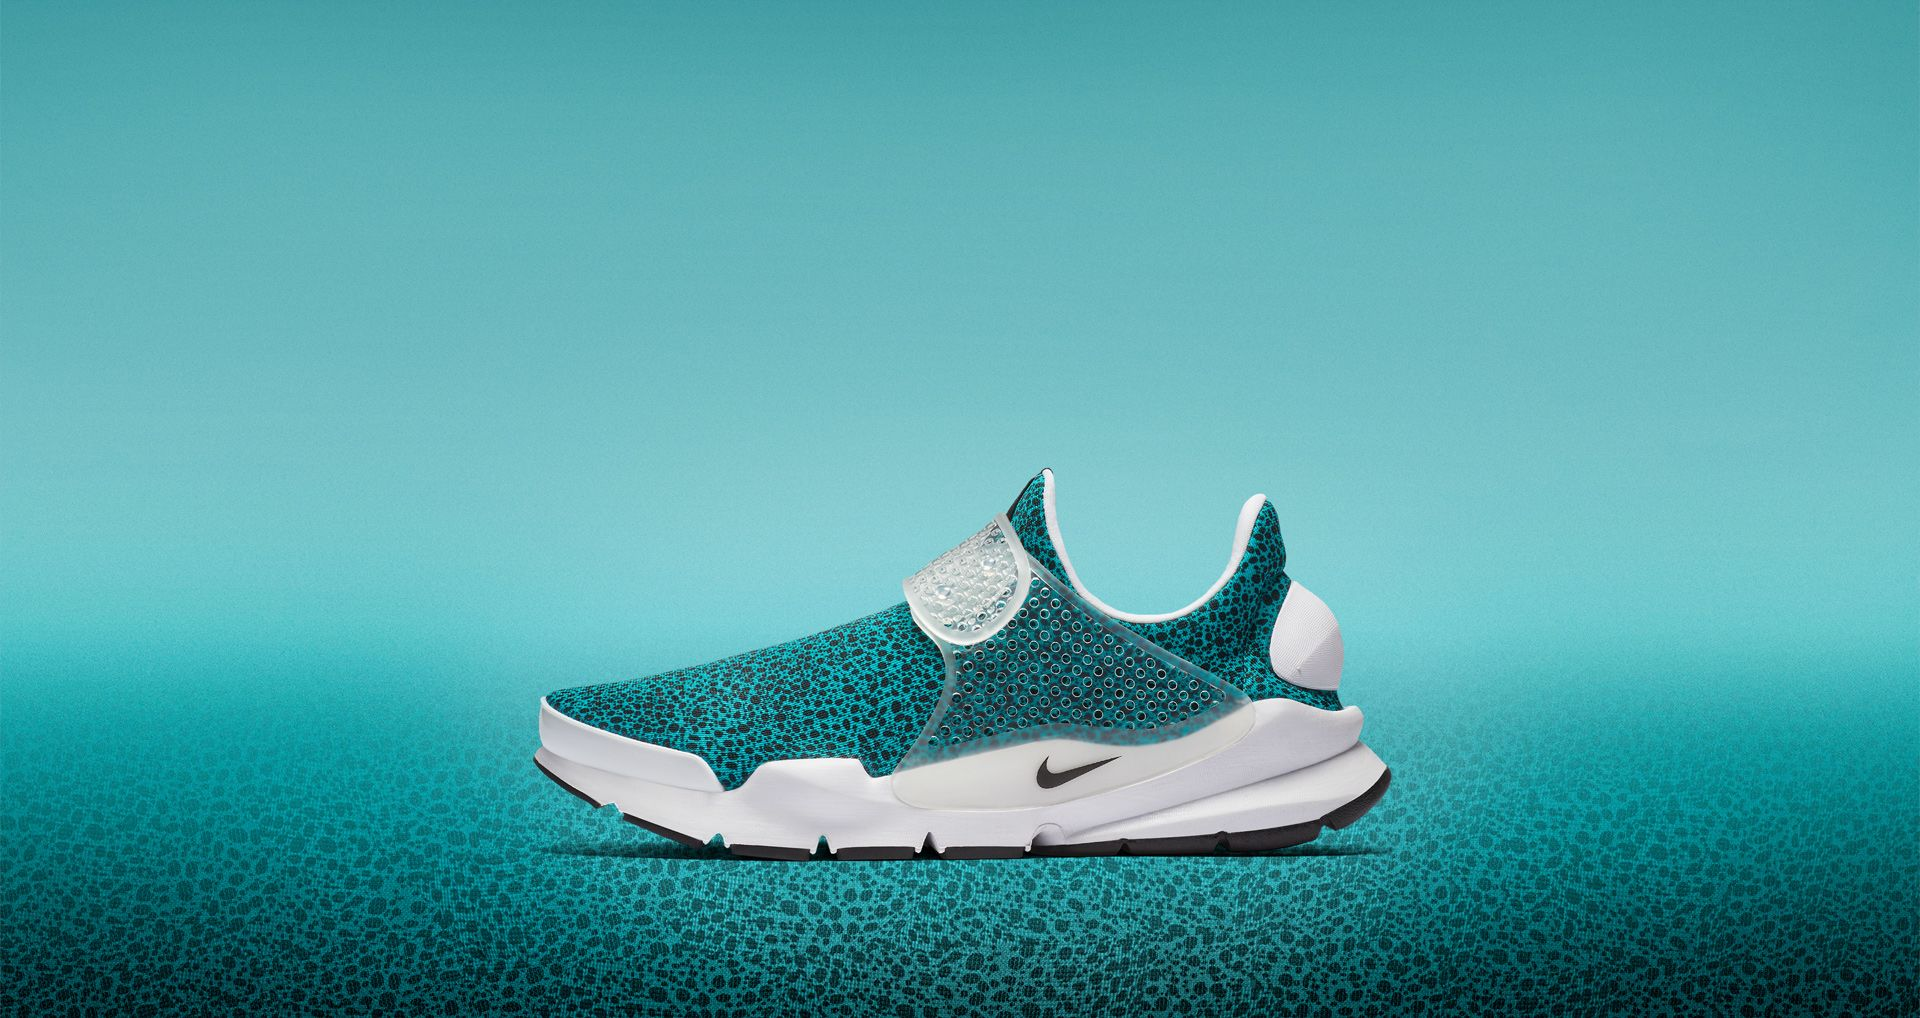 cff25f62 Nike Sock Dart 'Turbo Green' Safari 2017. Nike⁠+ SNKRS